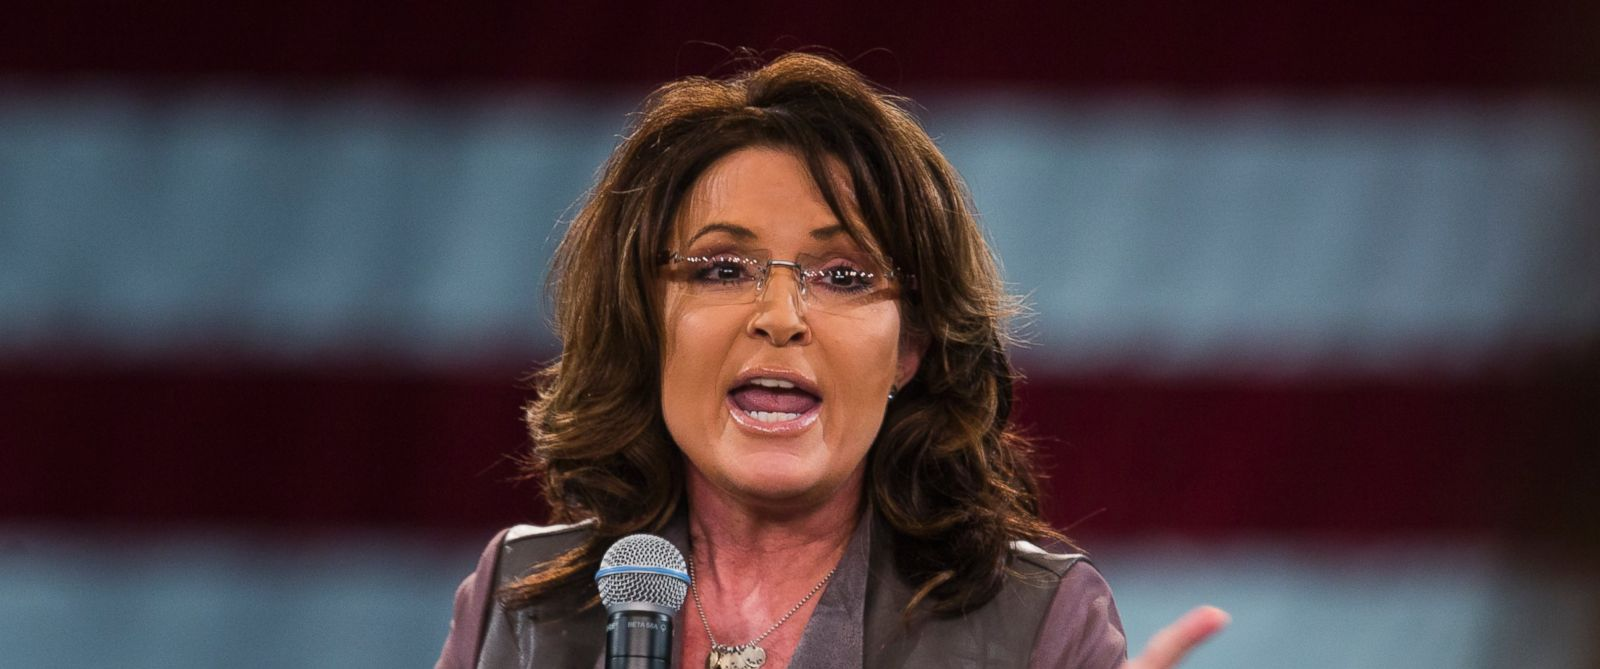 PHOTO: Former Alaska Governor Sarah Palin speaks at a campaign event for Republican presidential candidate Donald Trump at the Tampa Convention Center in Tampa, Fla., on March 14, 2016.